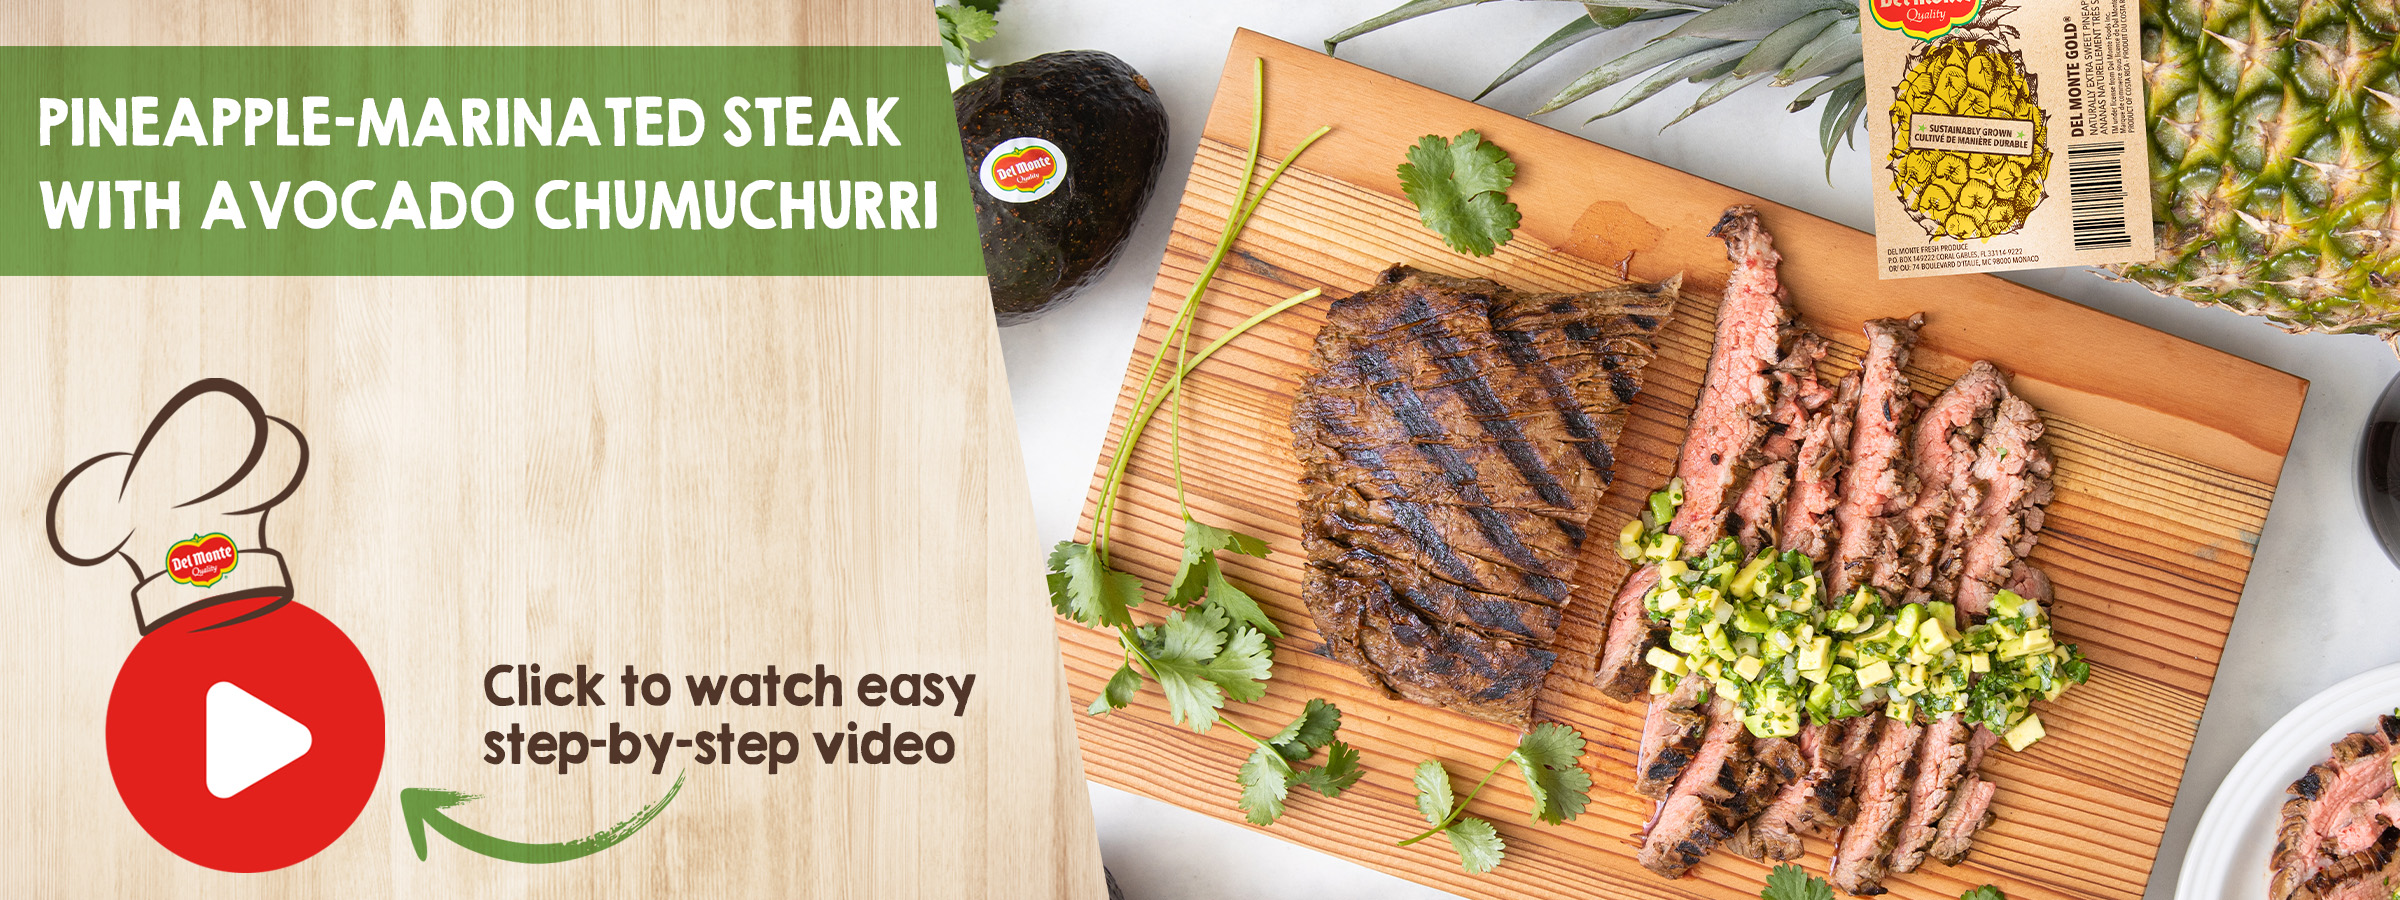 Homepage-Banner_Try-Our-Recipes_Pineapple-Marinated-Steak-with-Avocado-Chumuchurri_March-2020